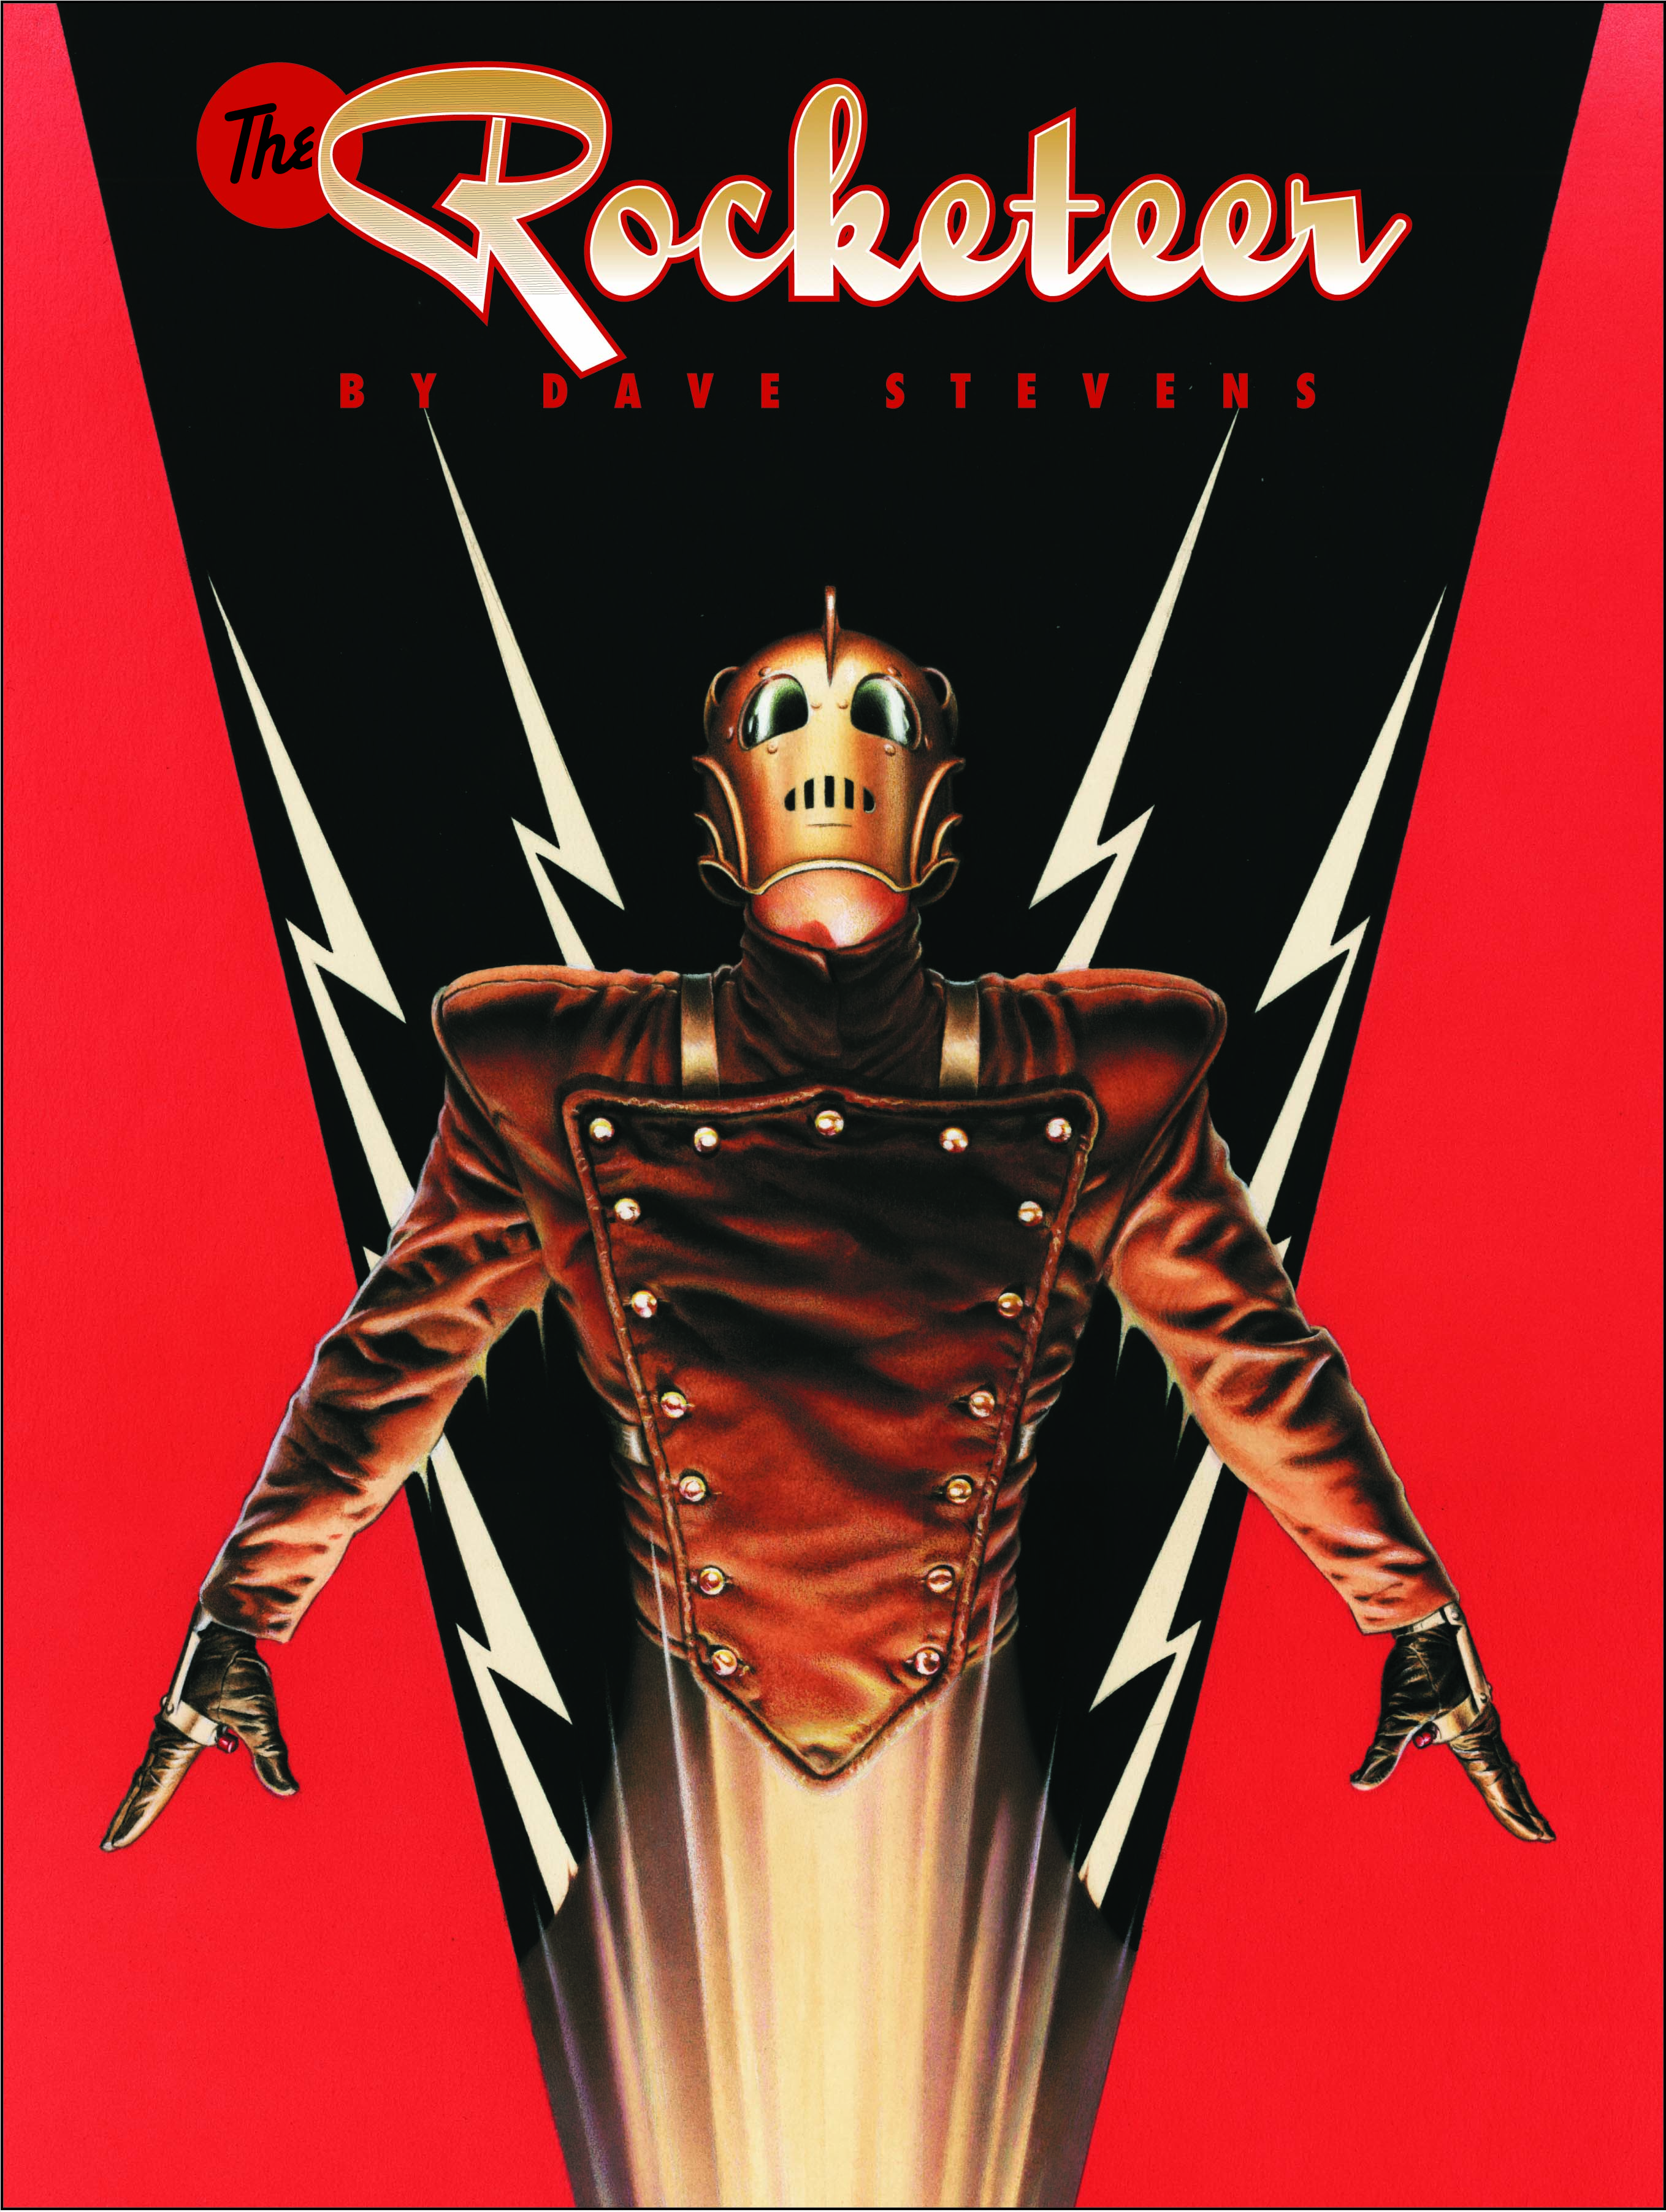 The Rocketeer Collection Blasts Off IDW Publishing